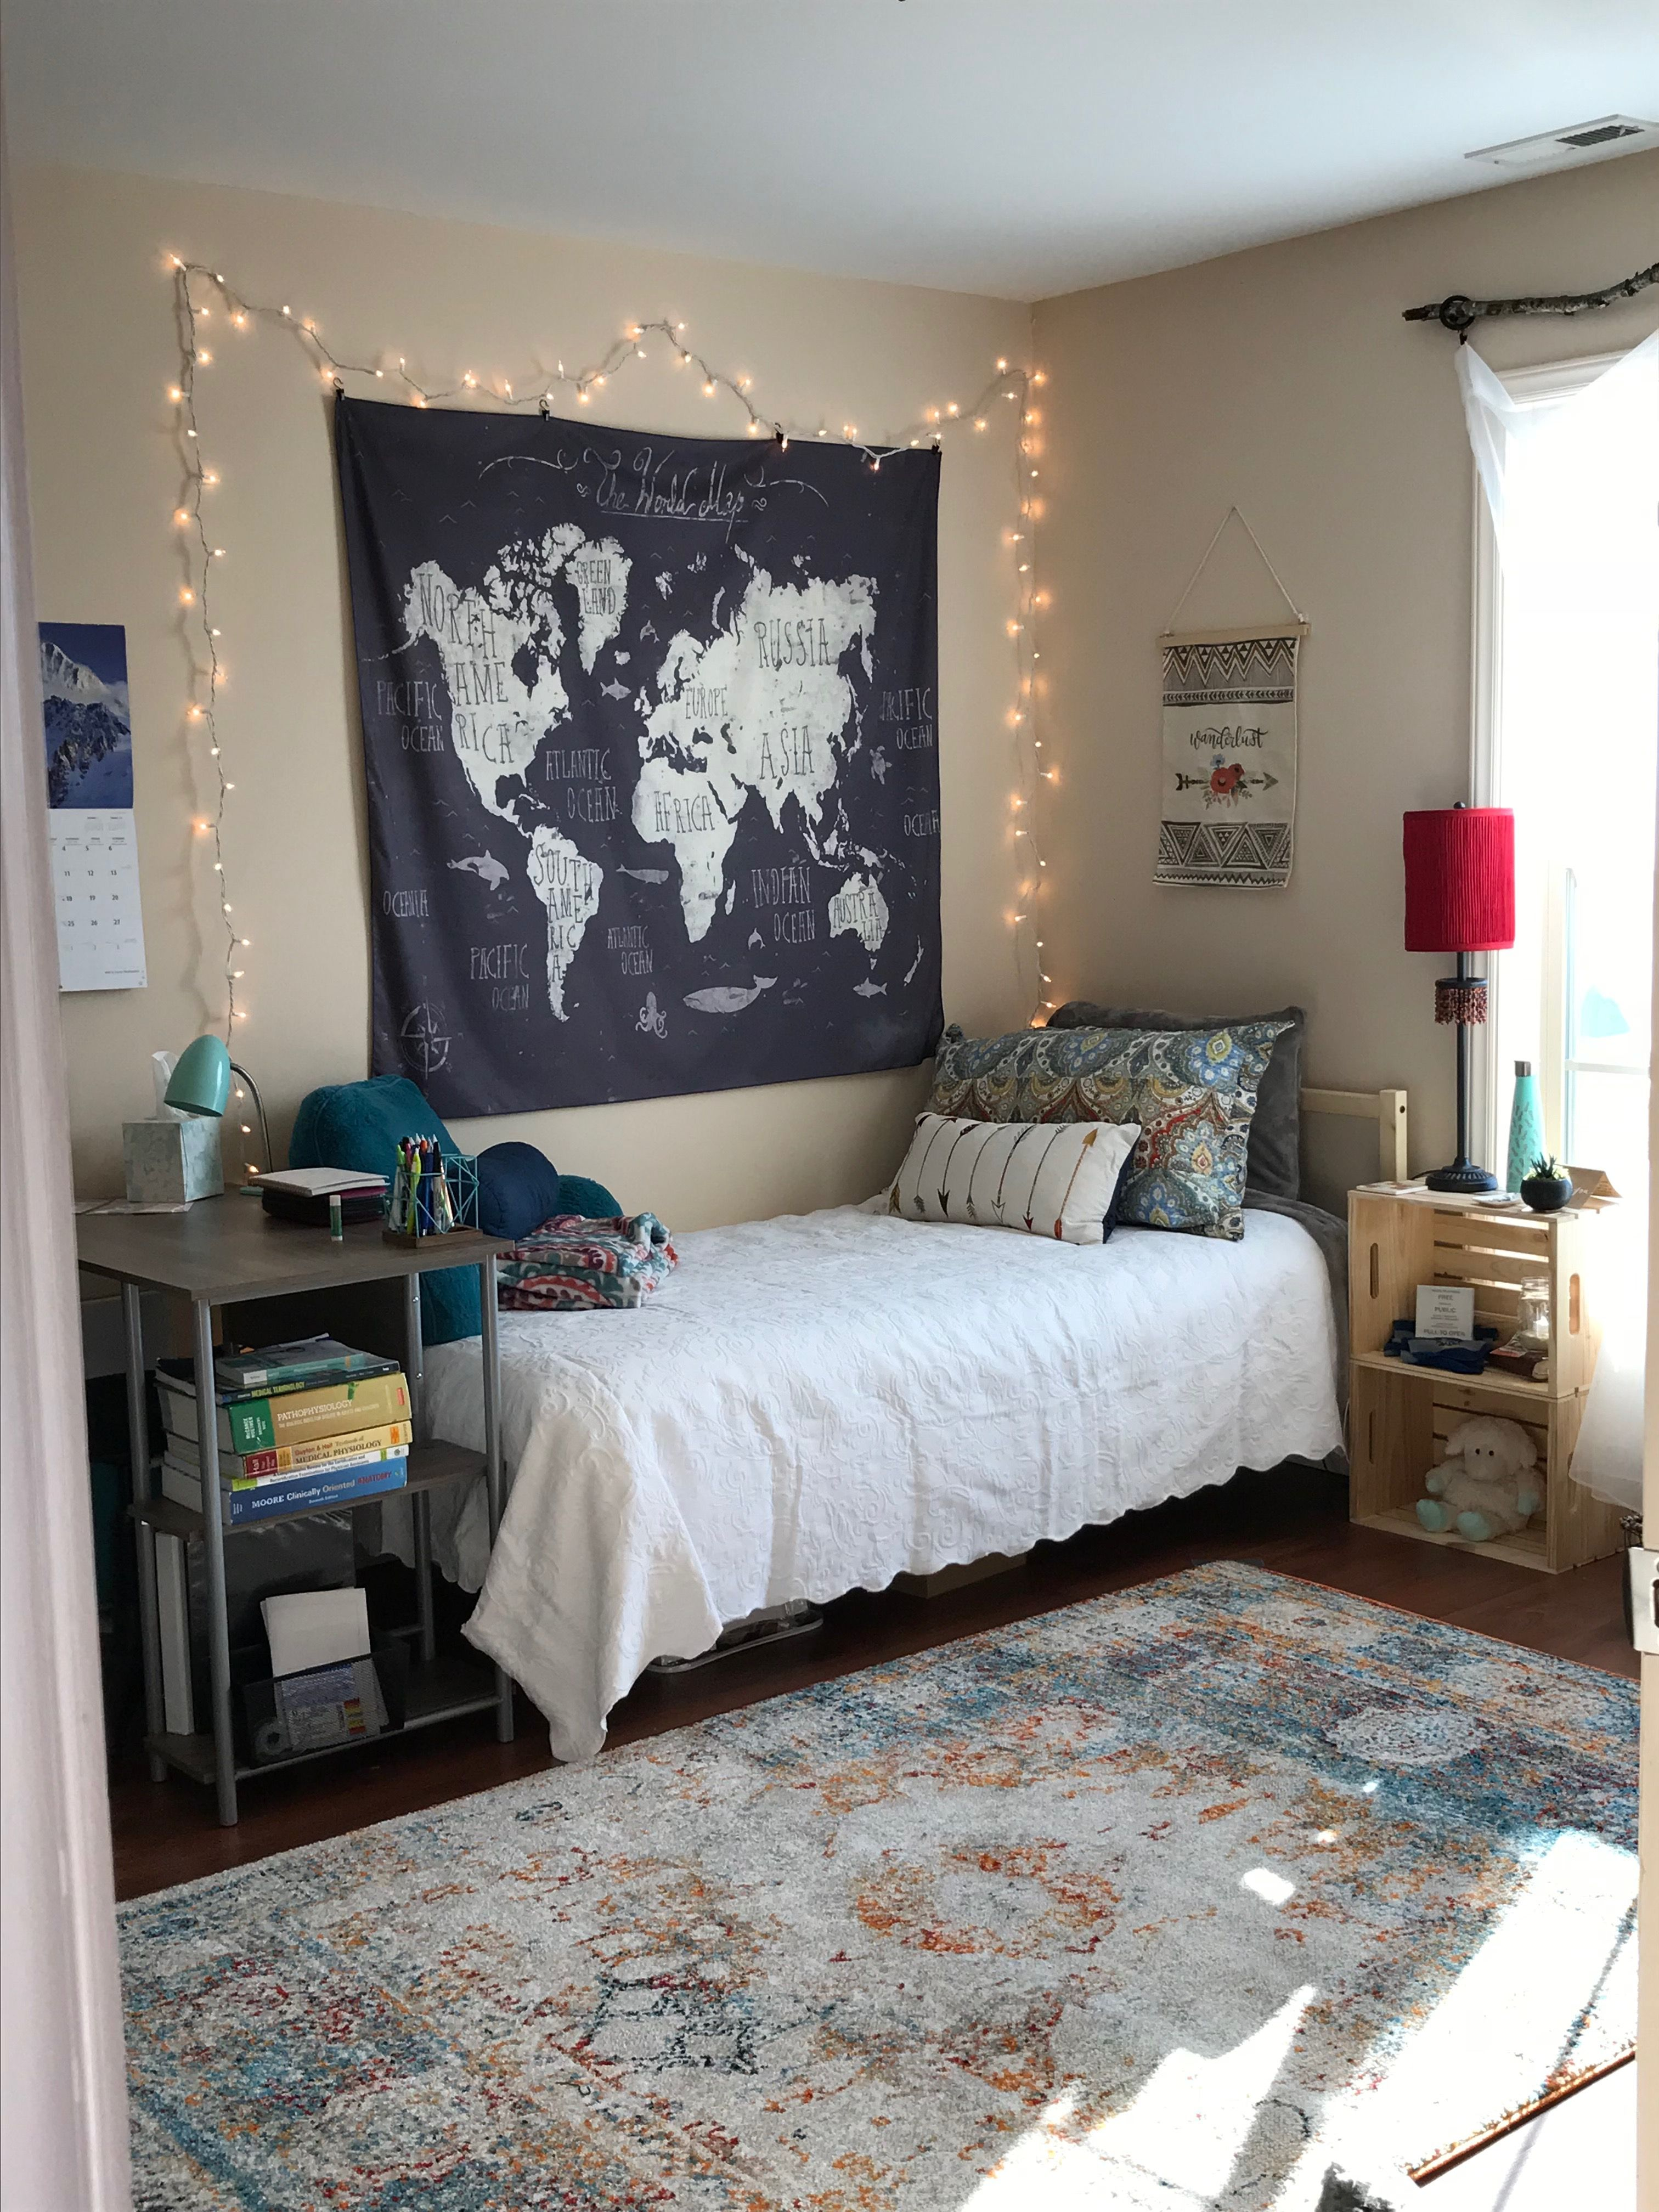 Small Dorm Room Ideas: What Perfection Looks Like ️